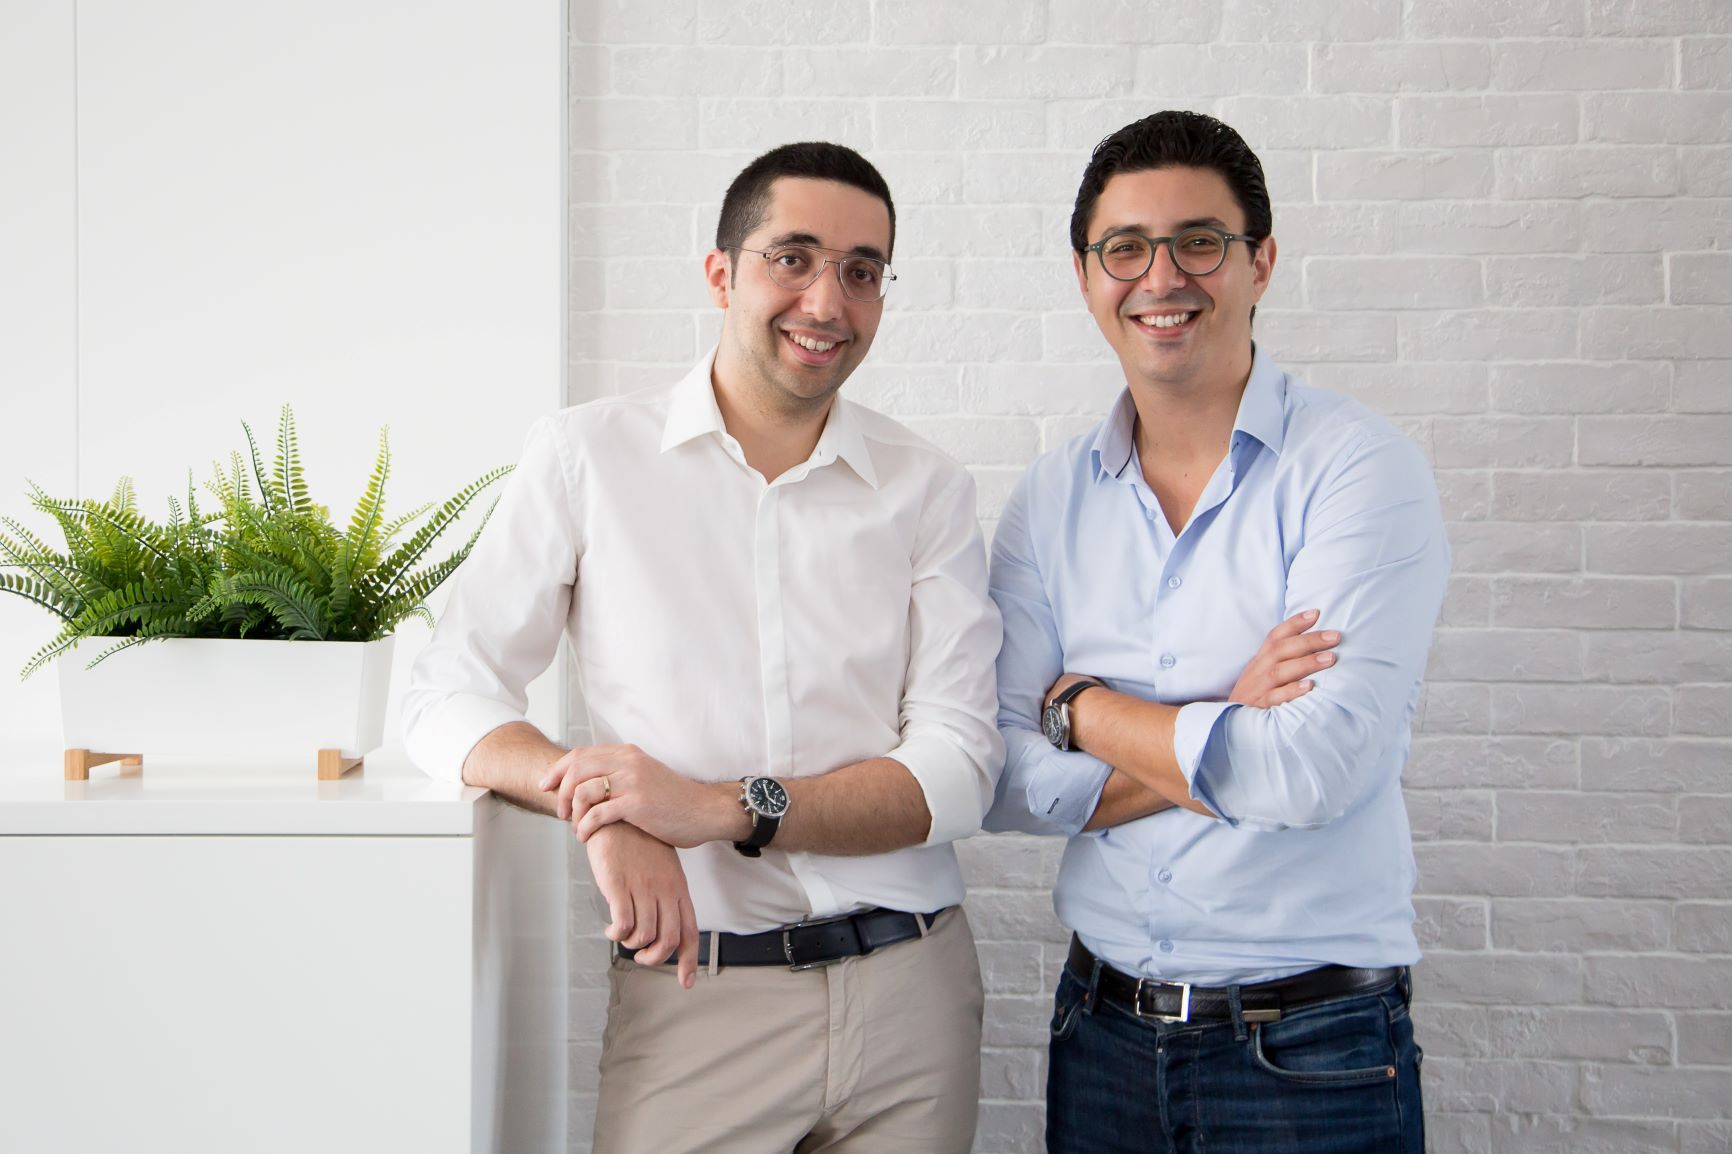 eyewa raises $7.5 million in Series A